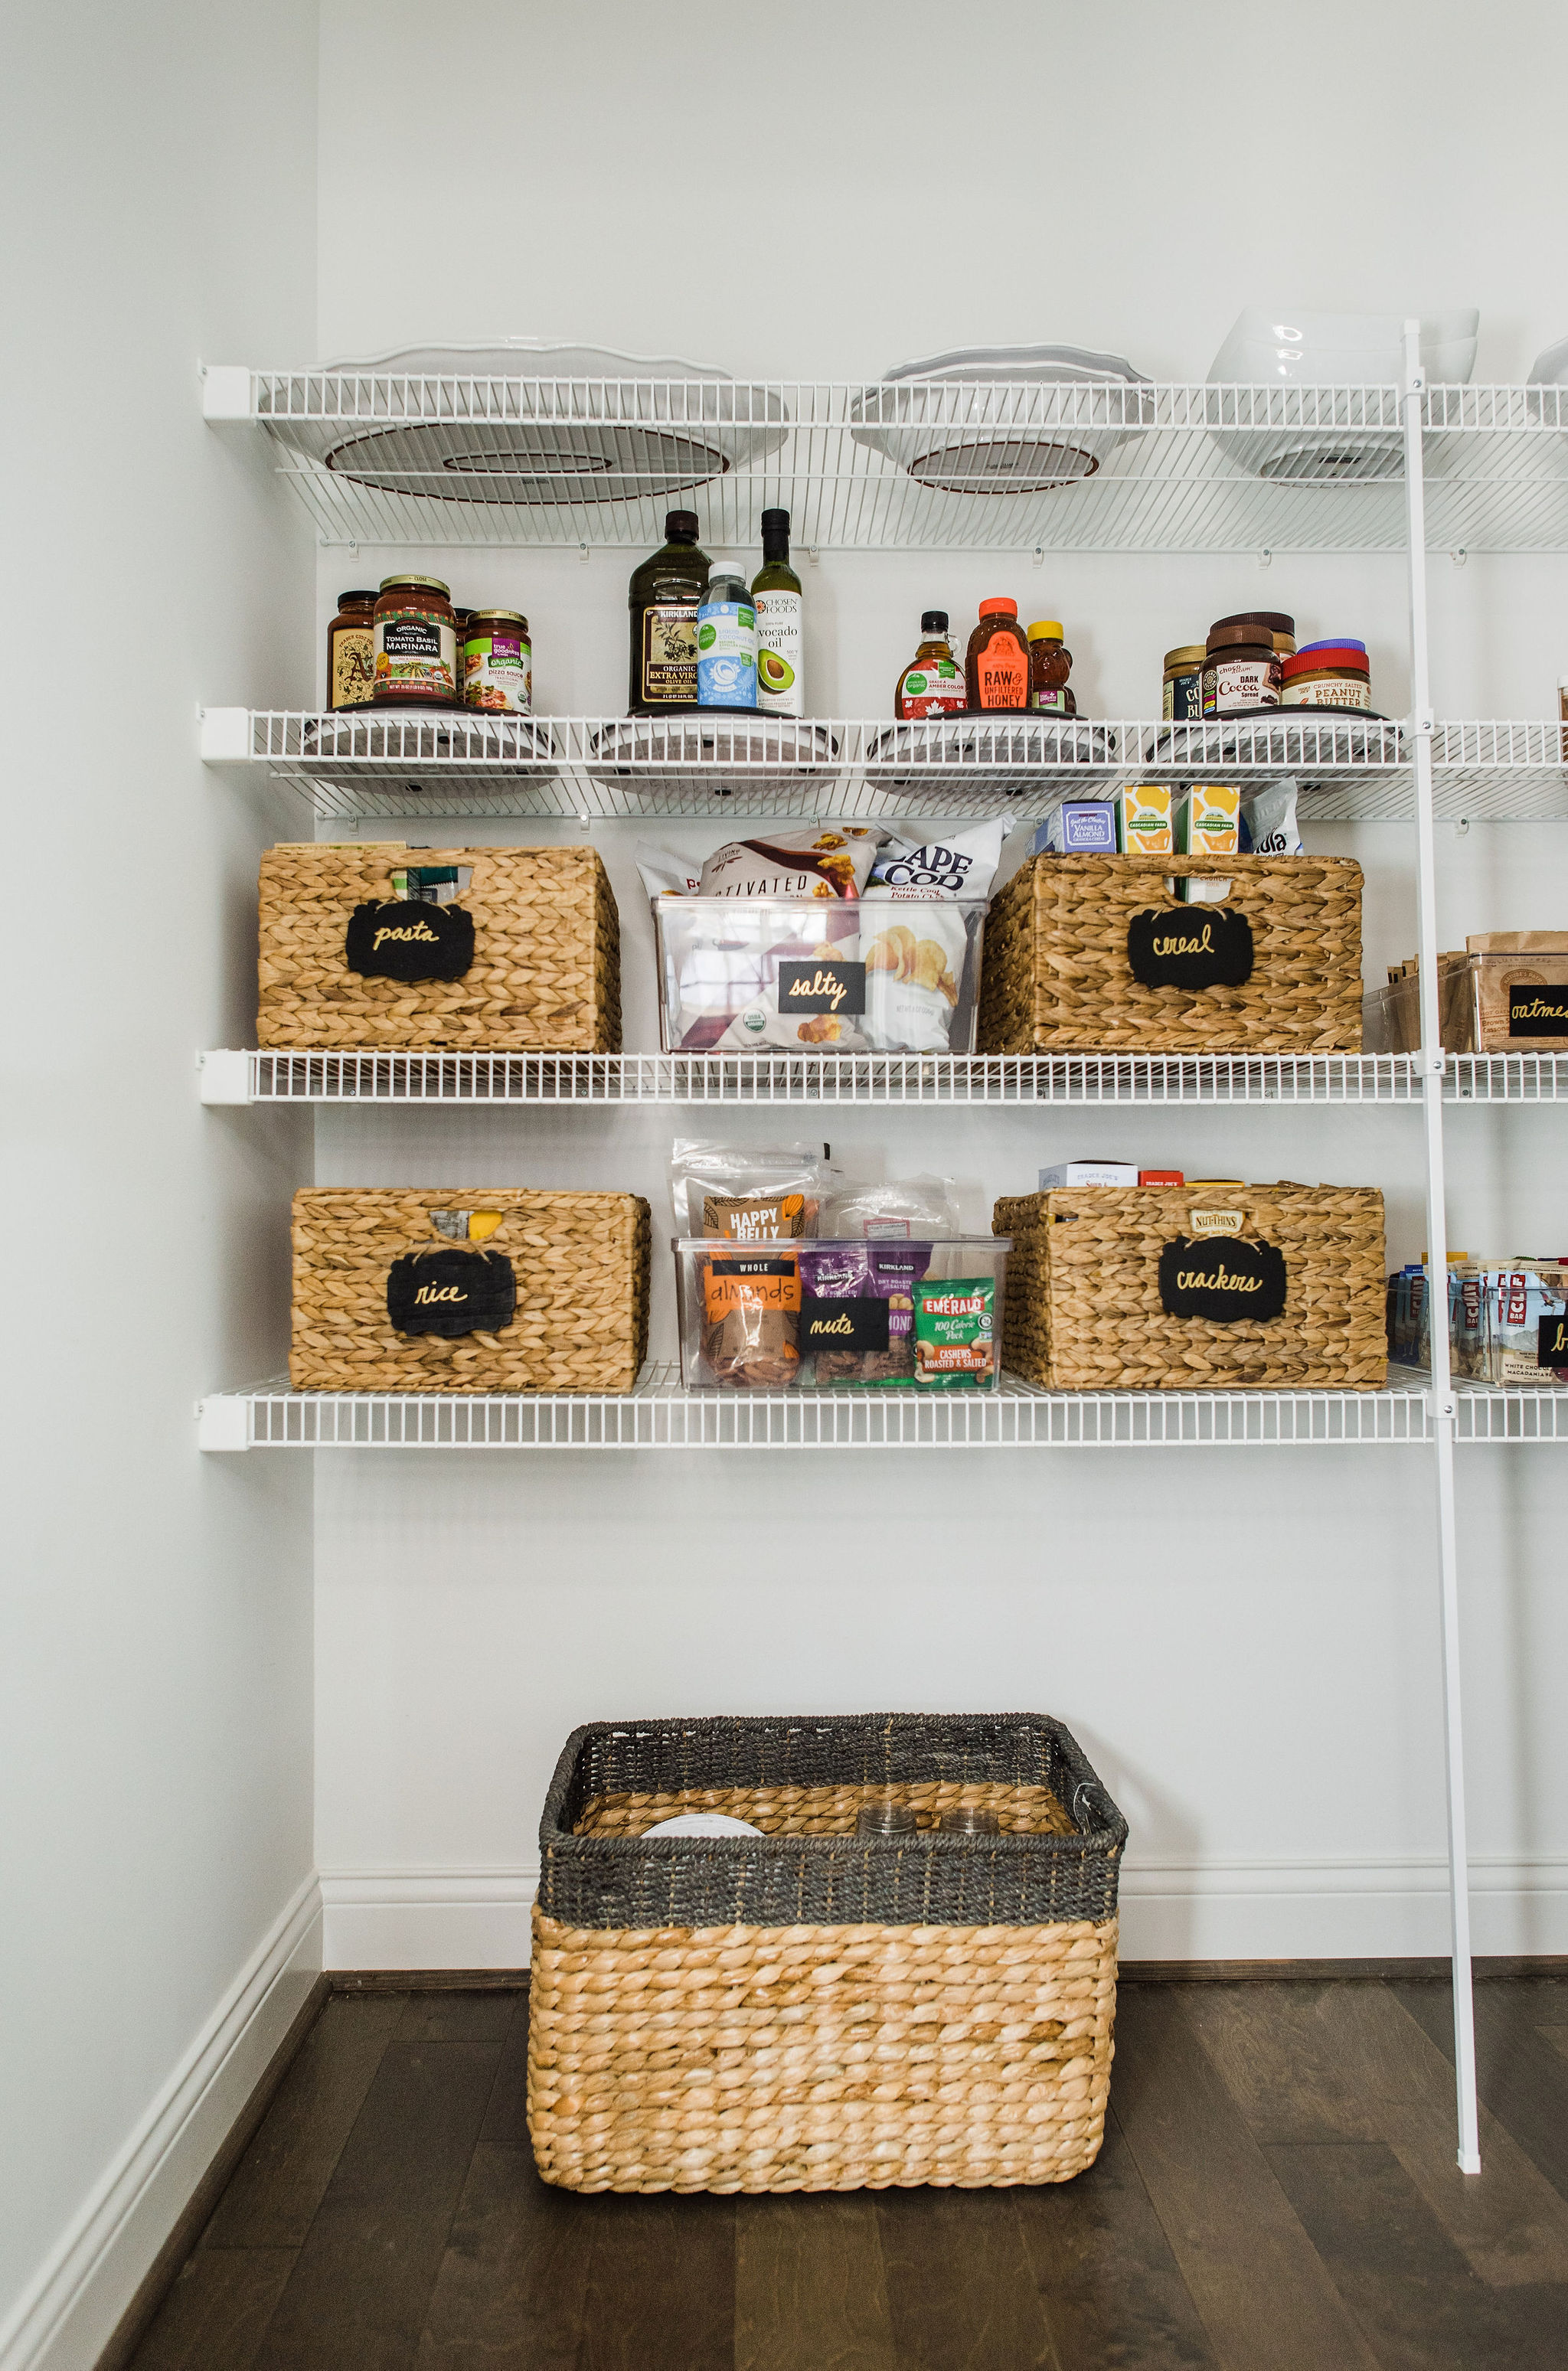 The_Home_Sanctuary_Pantry_Organization_064.JPG